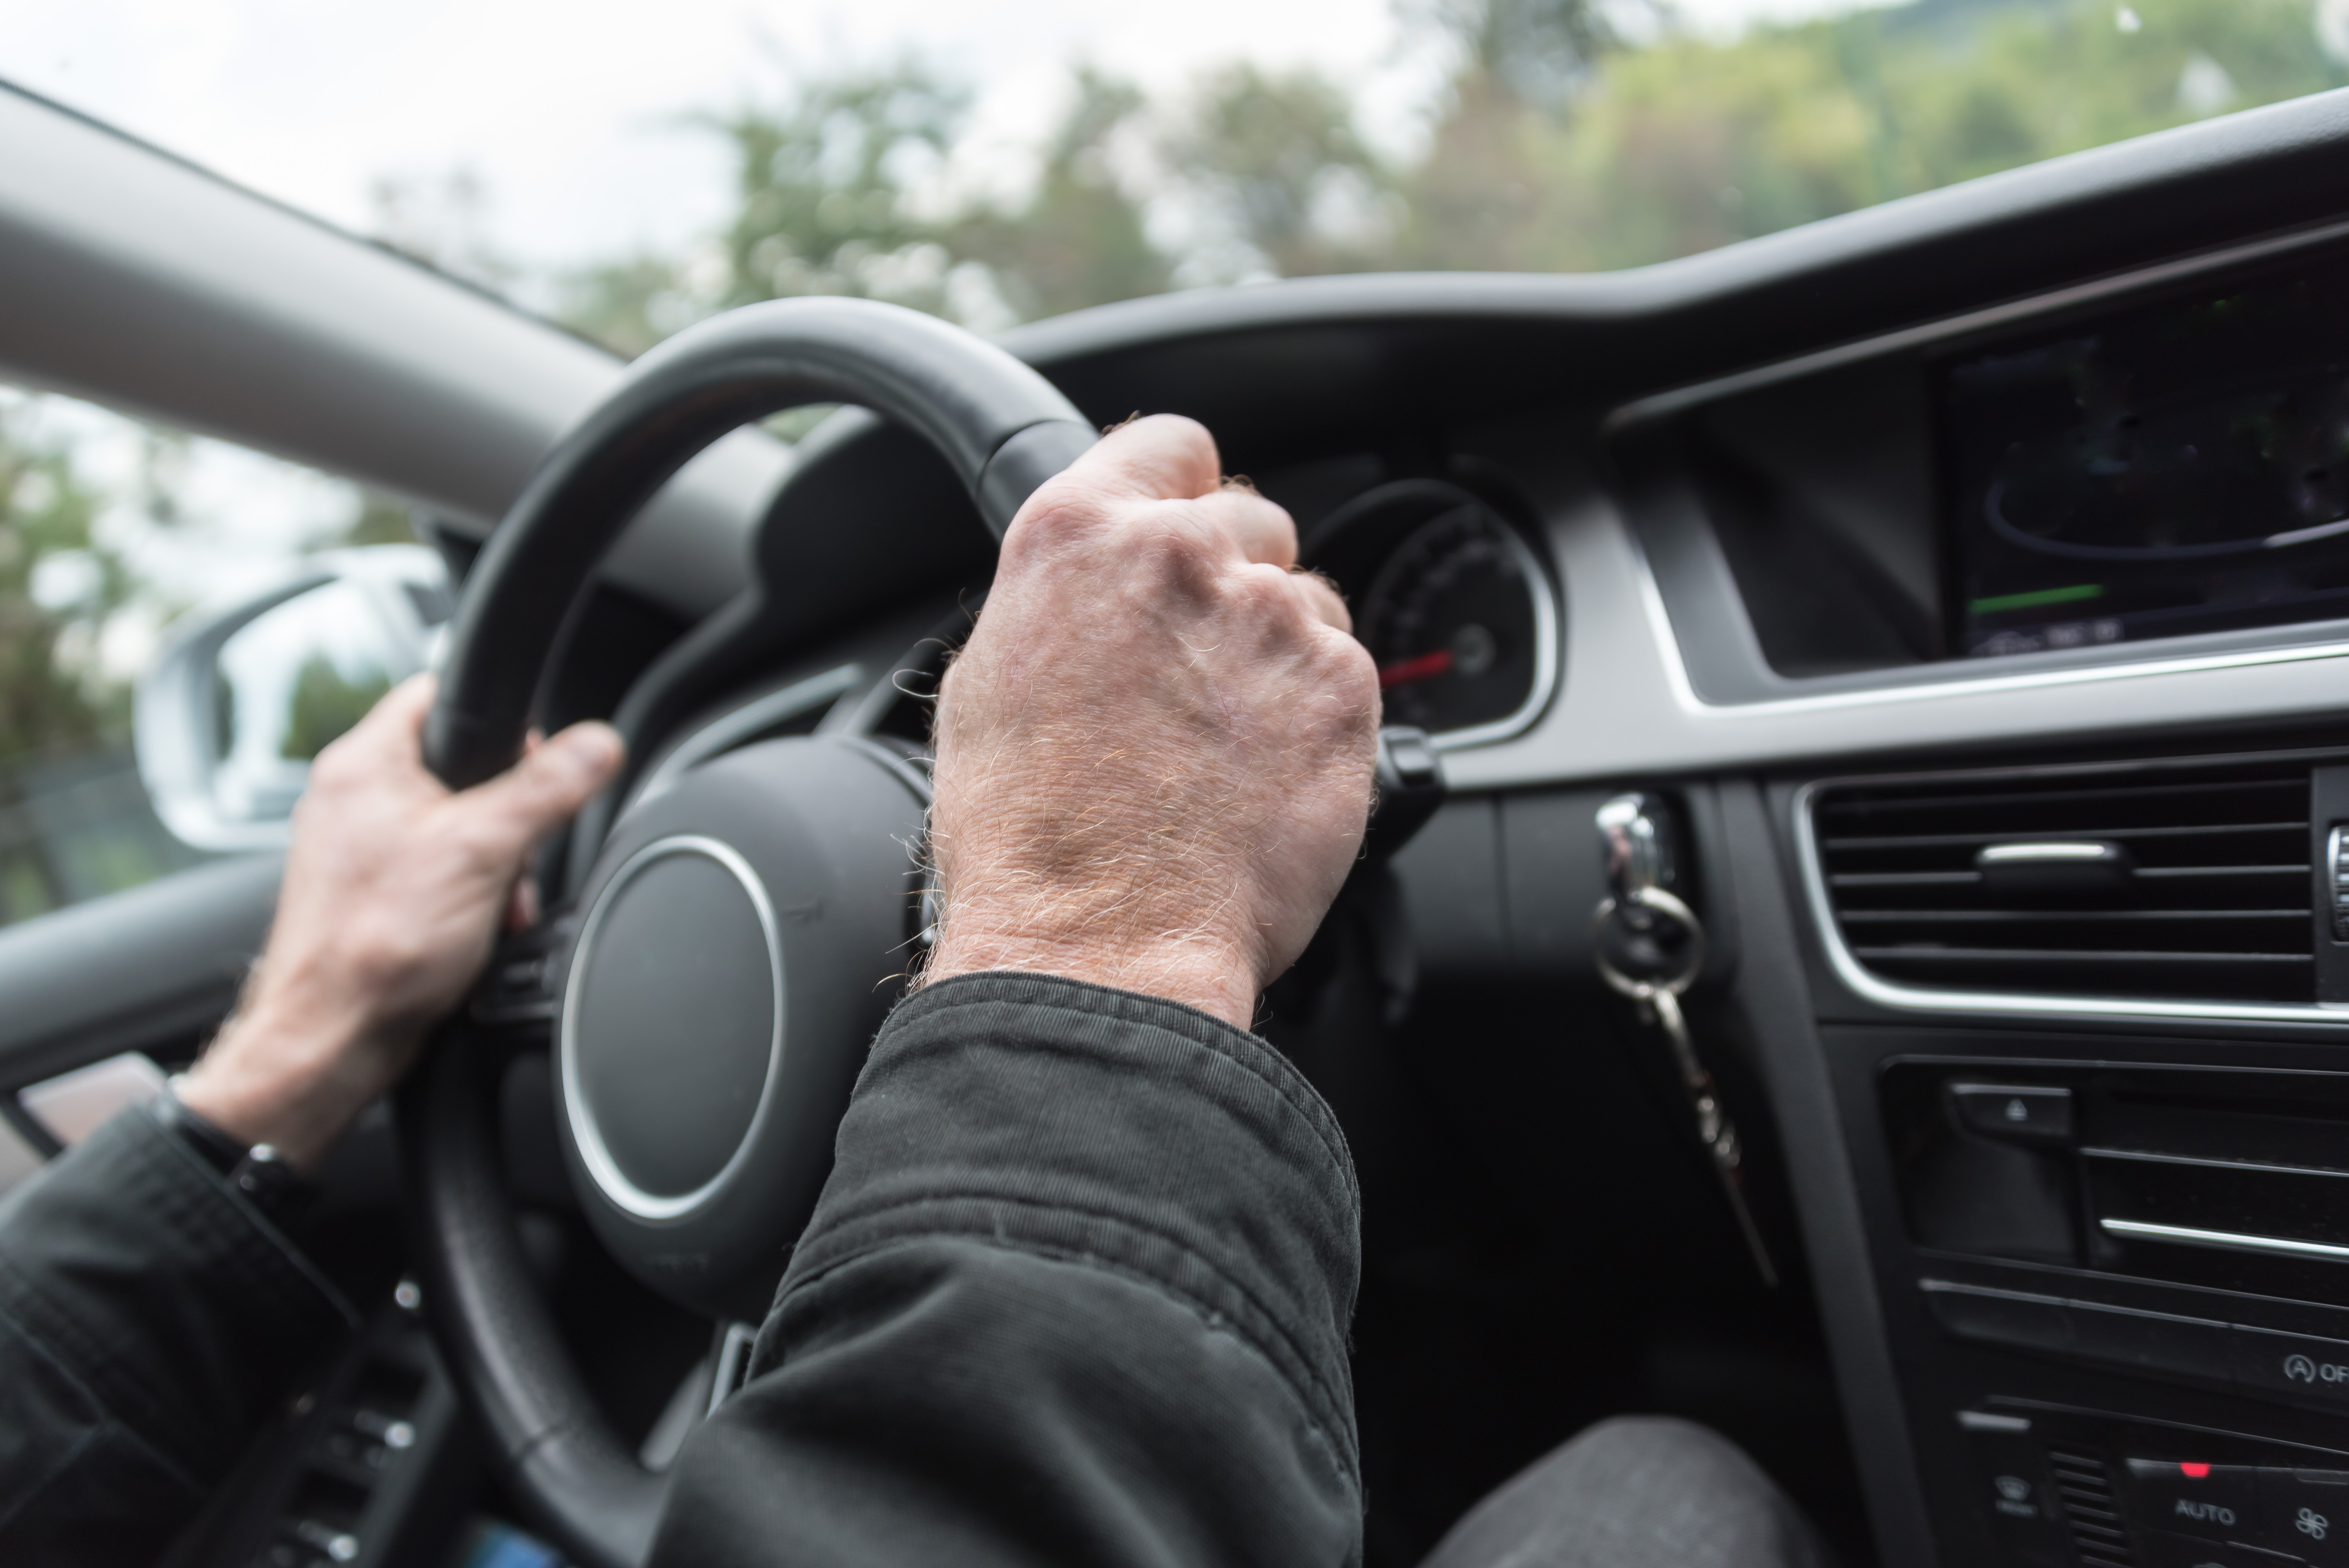 Test Drive A Car Like A Pro In 6 Easy Steps